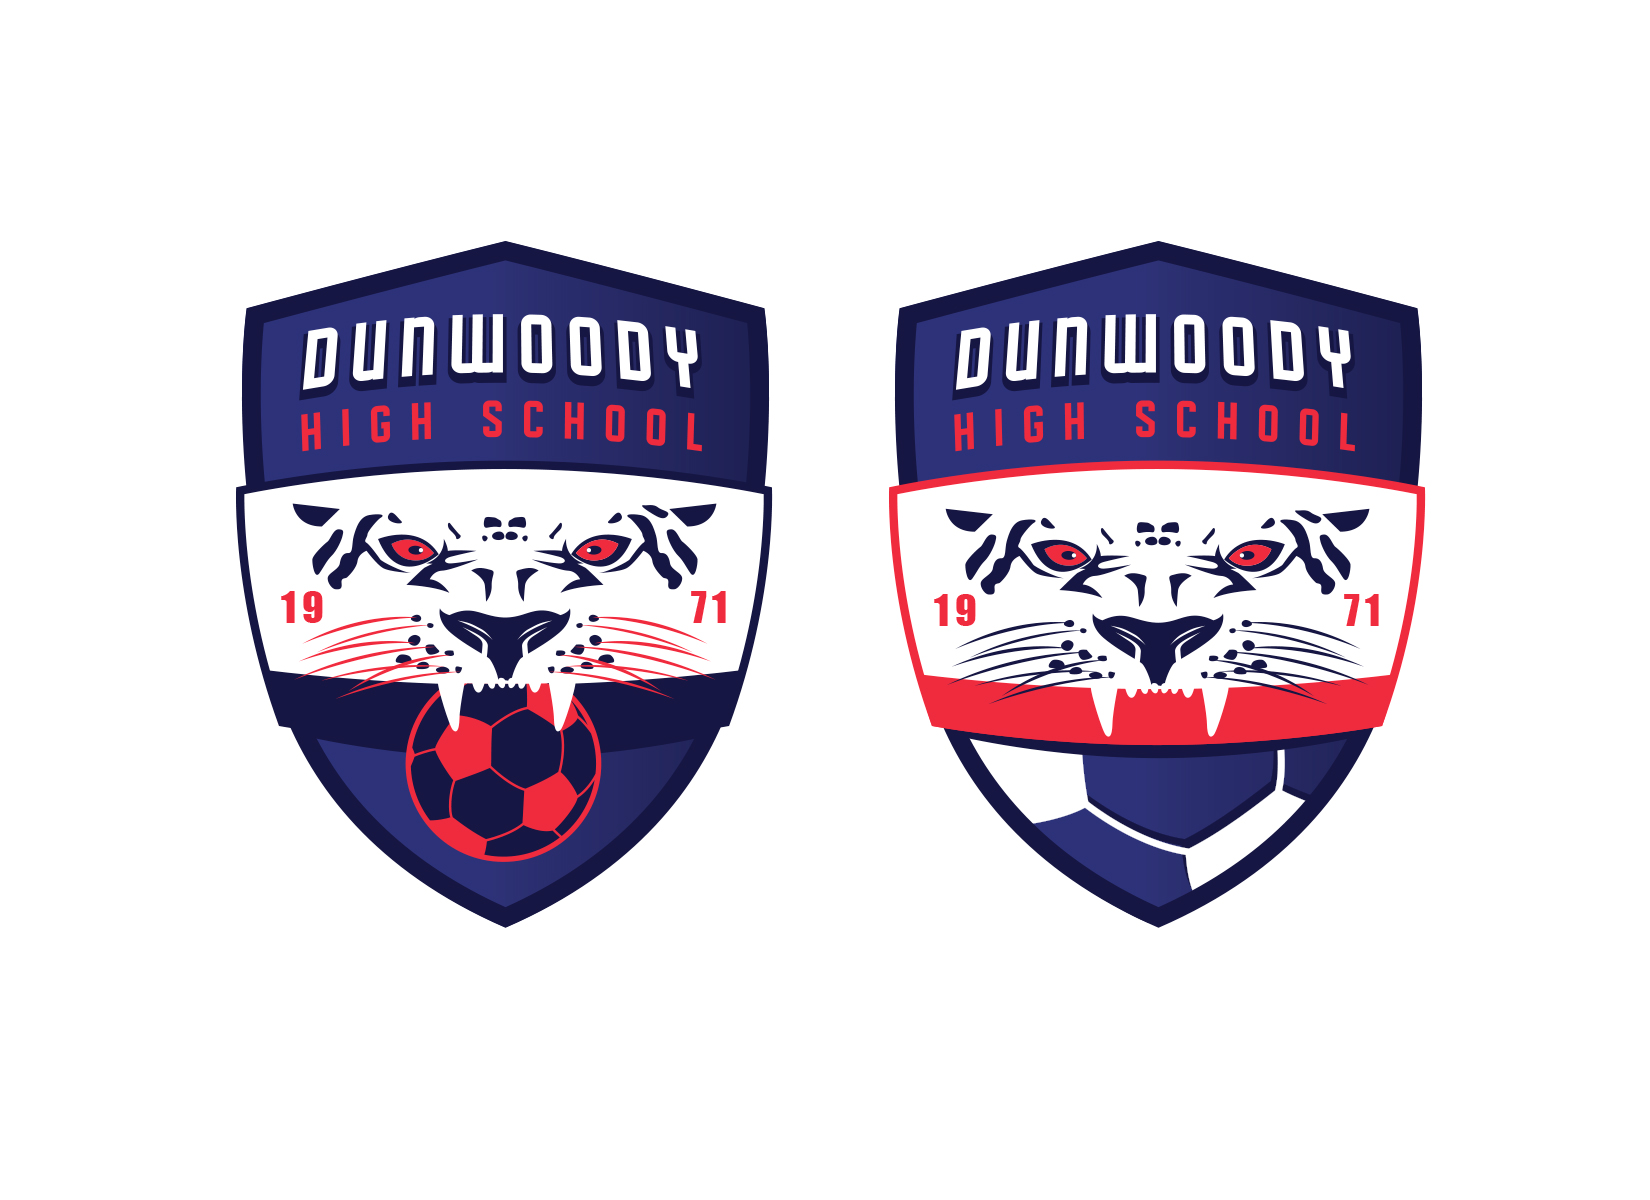 custom-soccer-logo-design-by-jordan-fretz-for-high-school-soccer-team-1.jpg